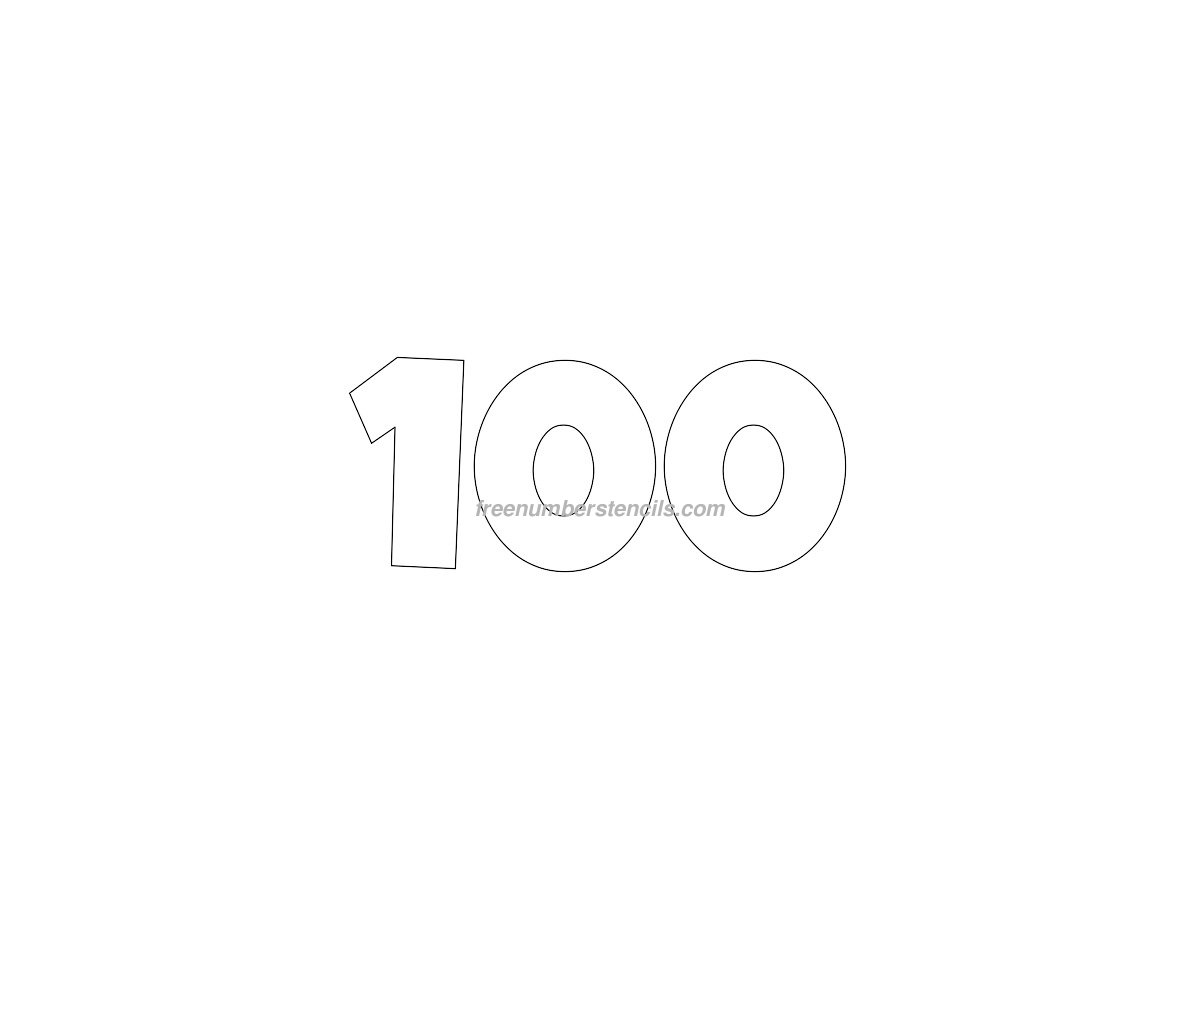 template for numbers 1 100 - free giant 100 number stencil